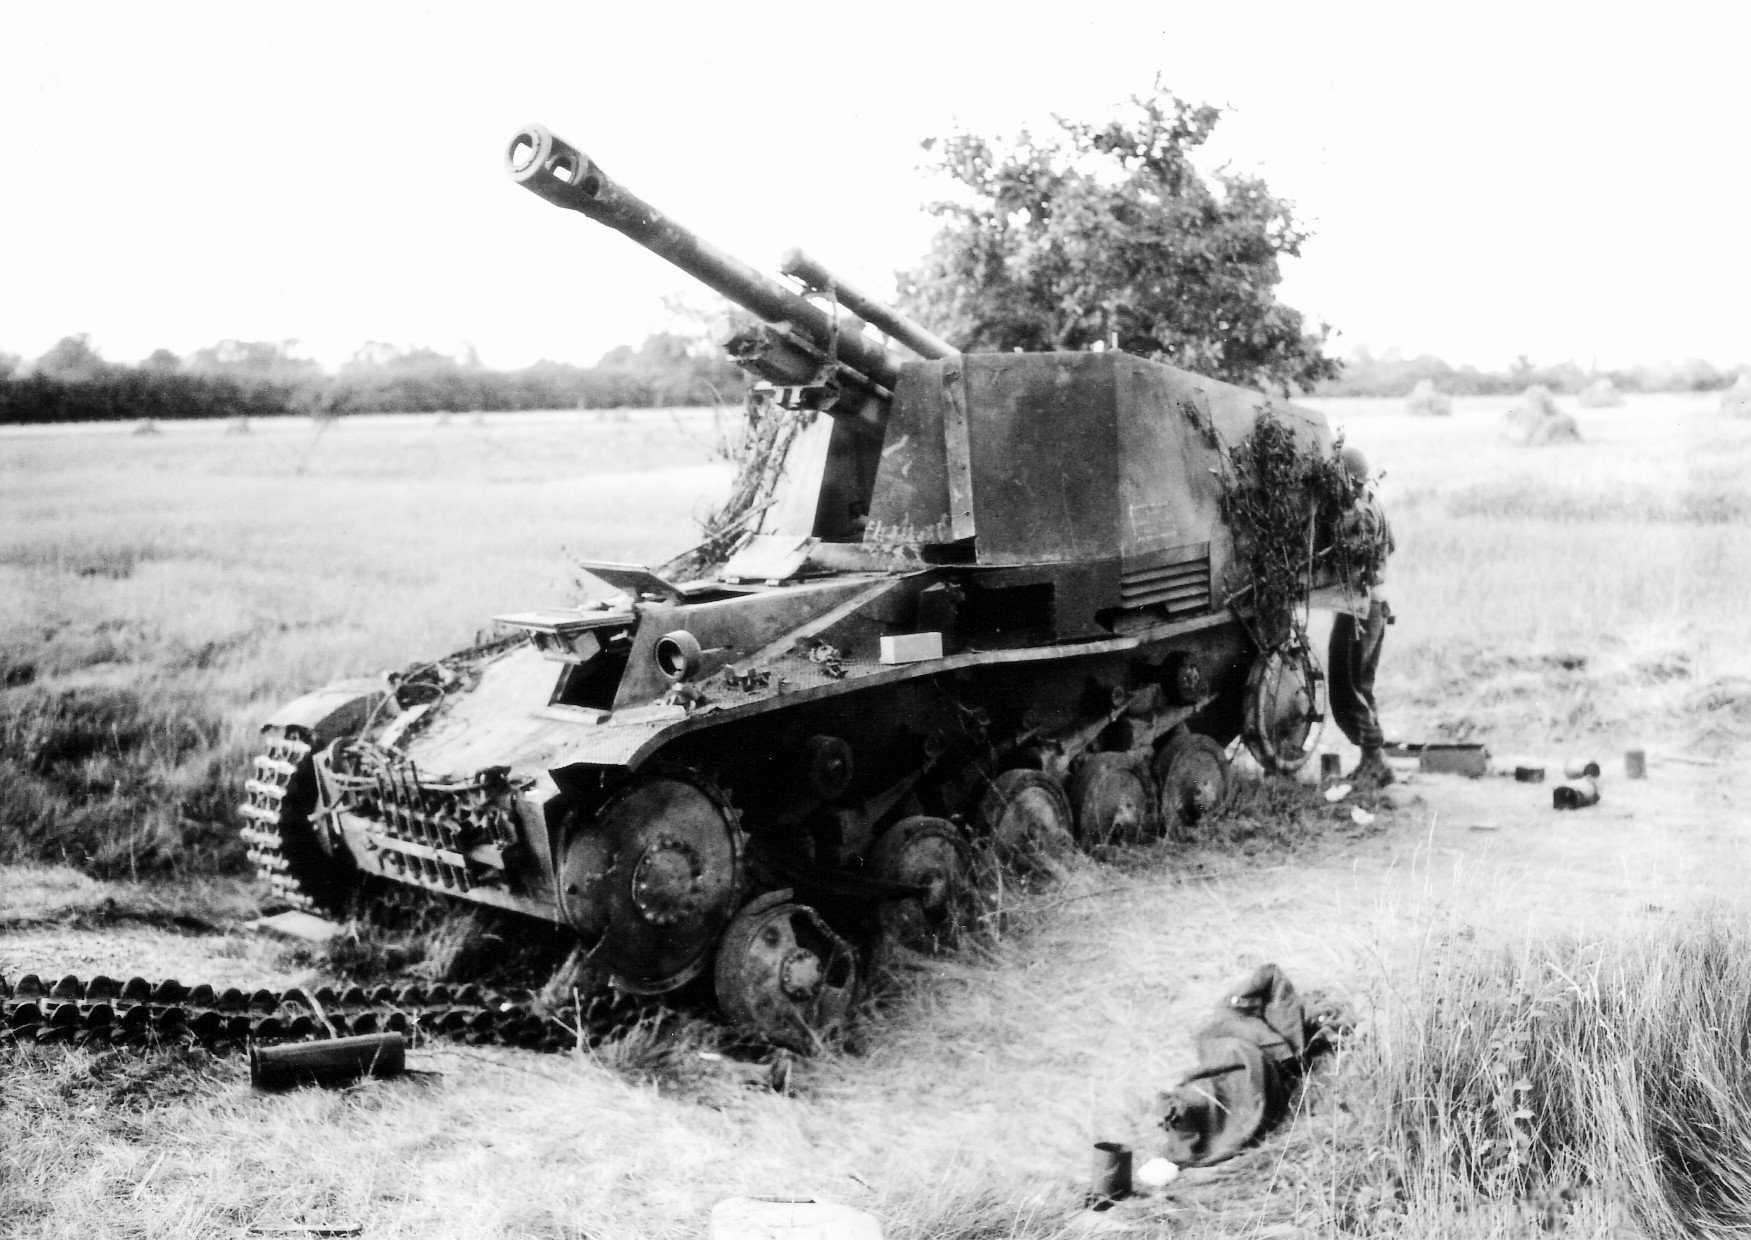 Destroyed German Self-Propelled Gun Carriage